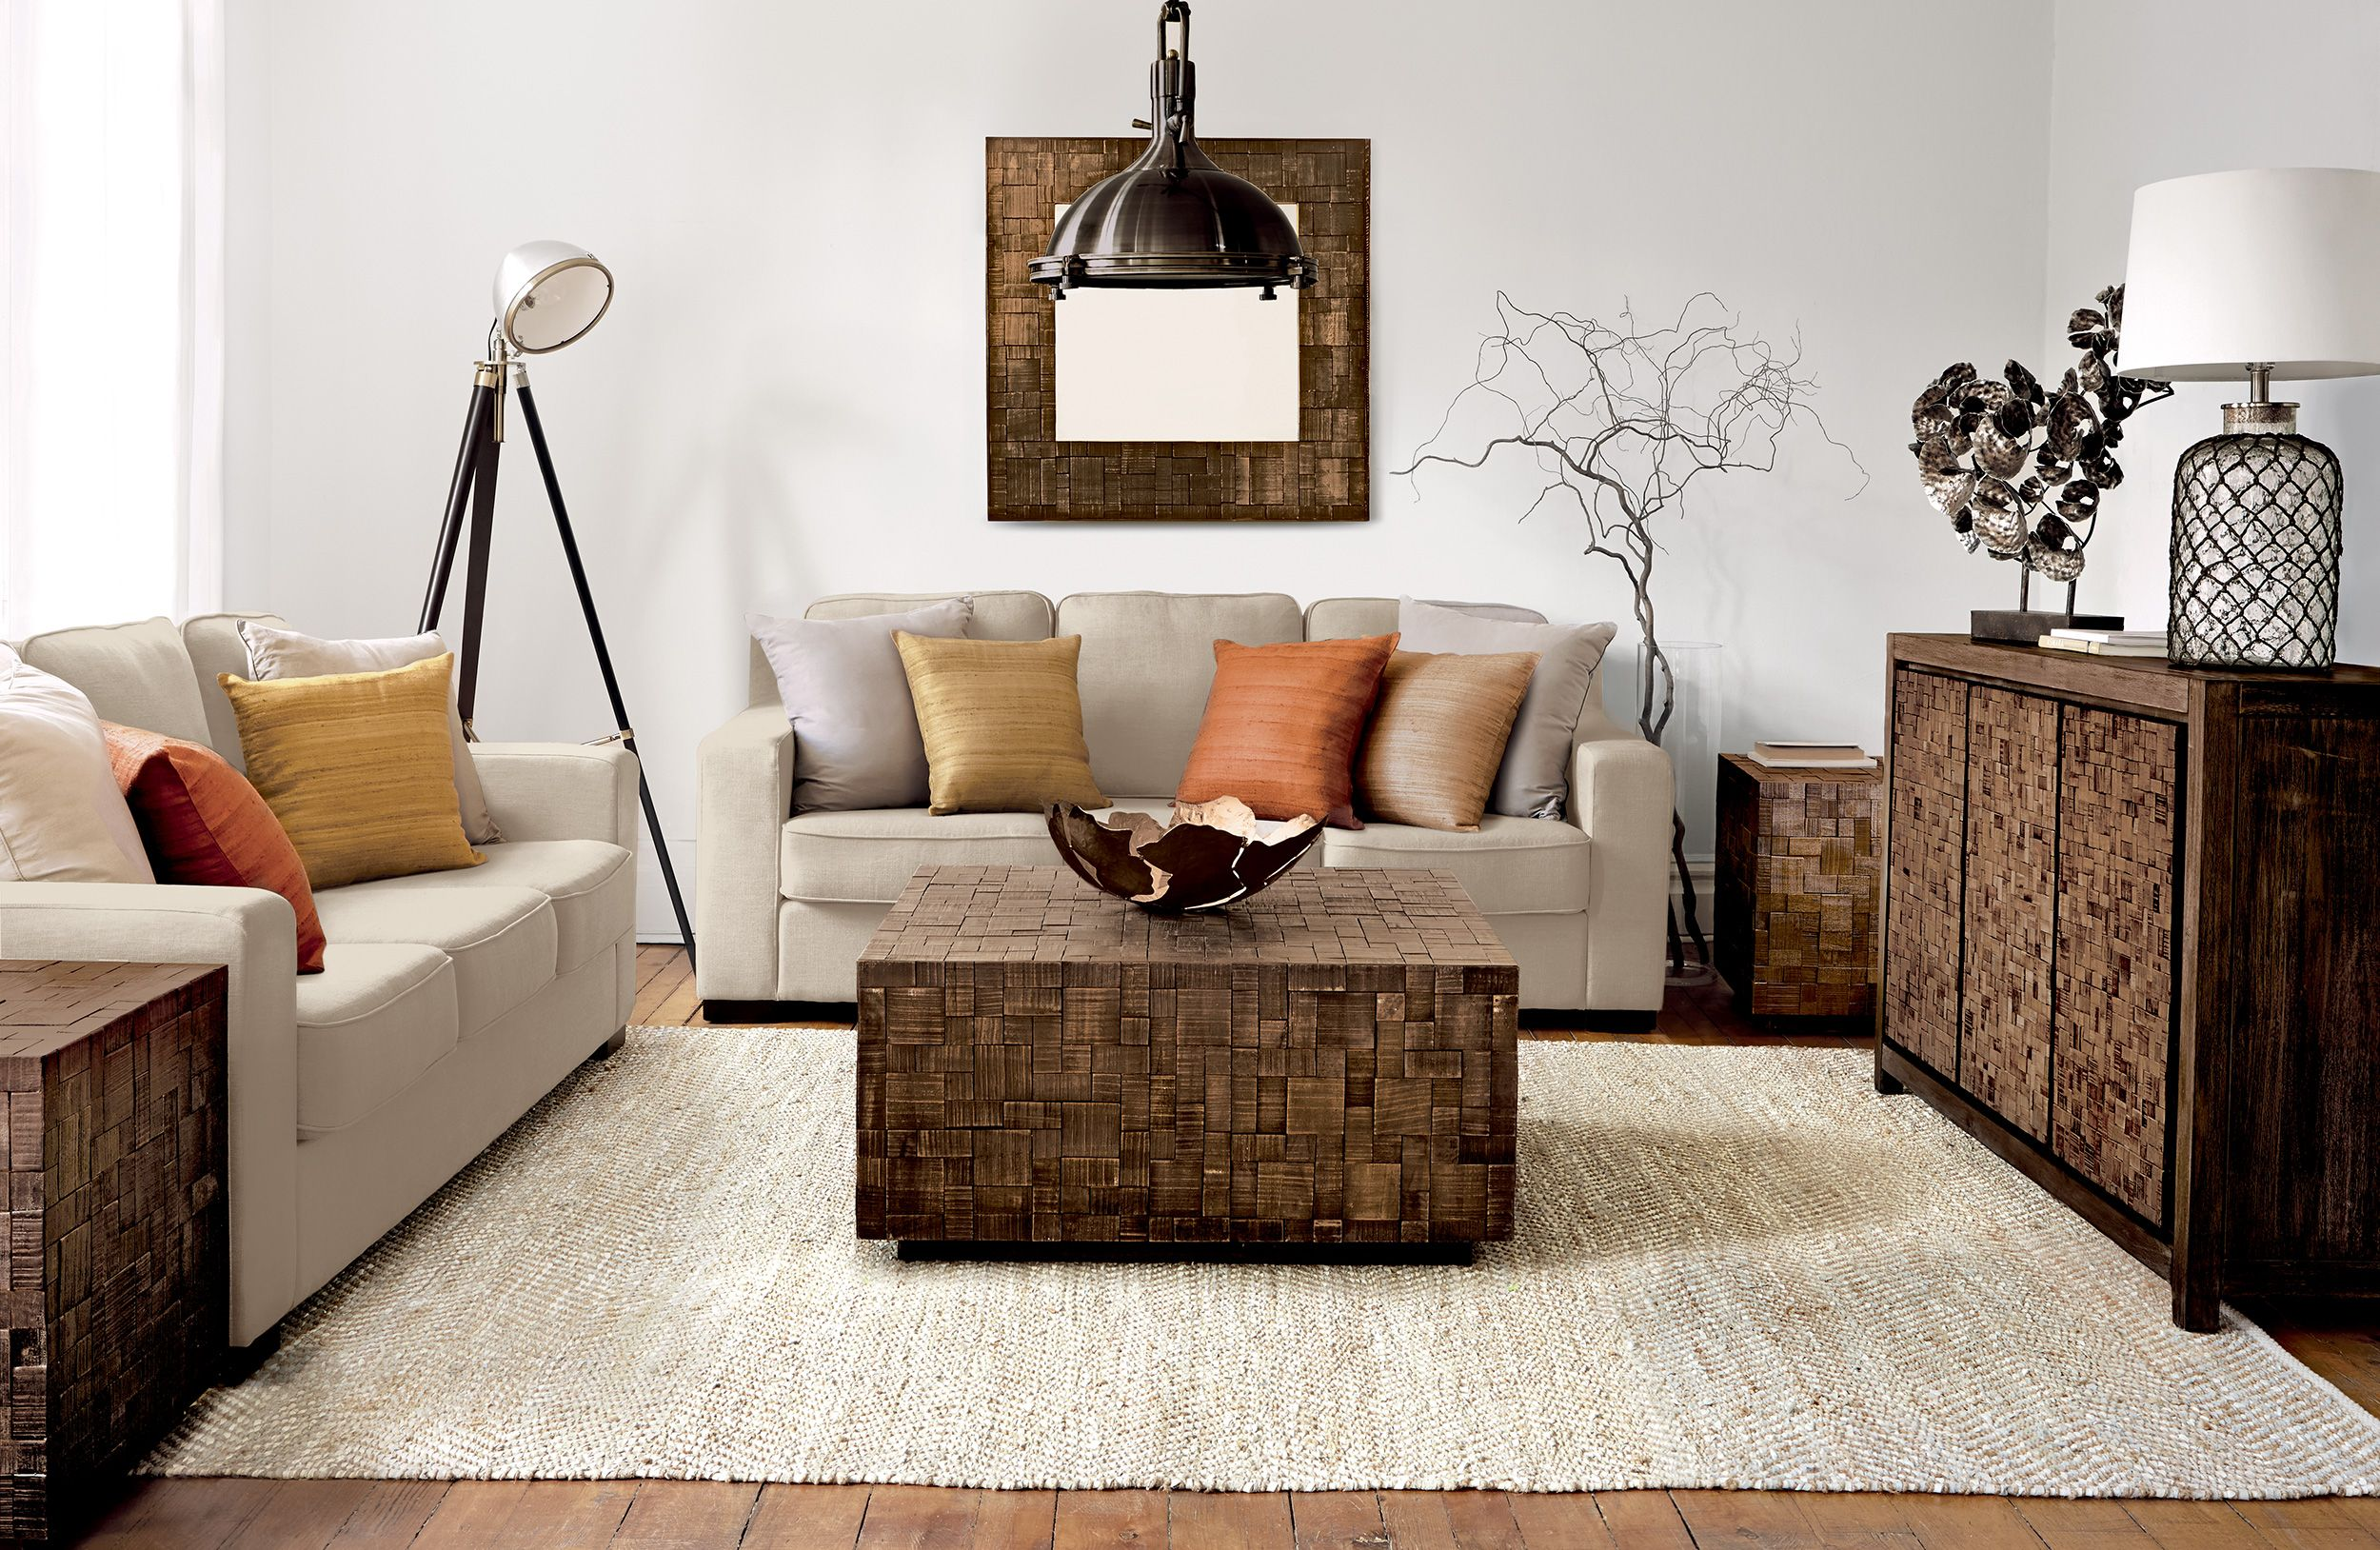 24++ House decor stores canada ideas in 2021